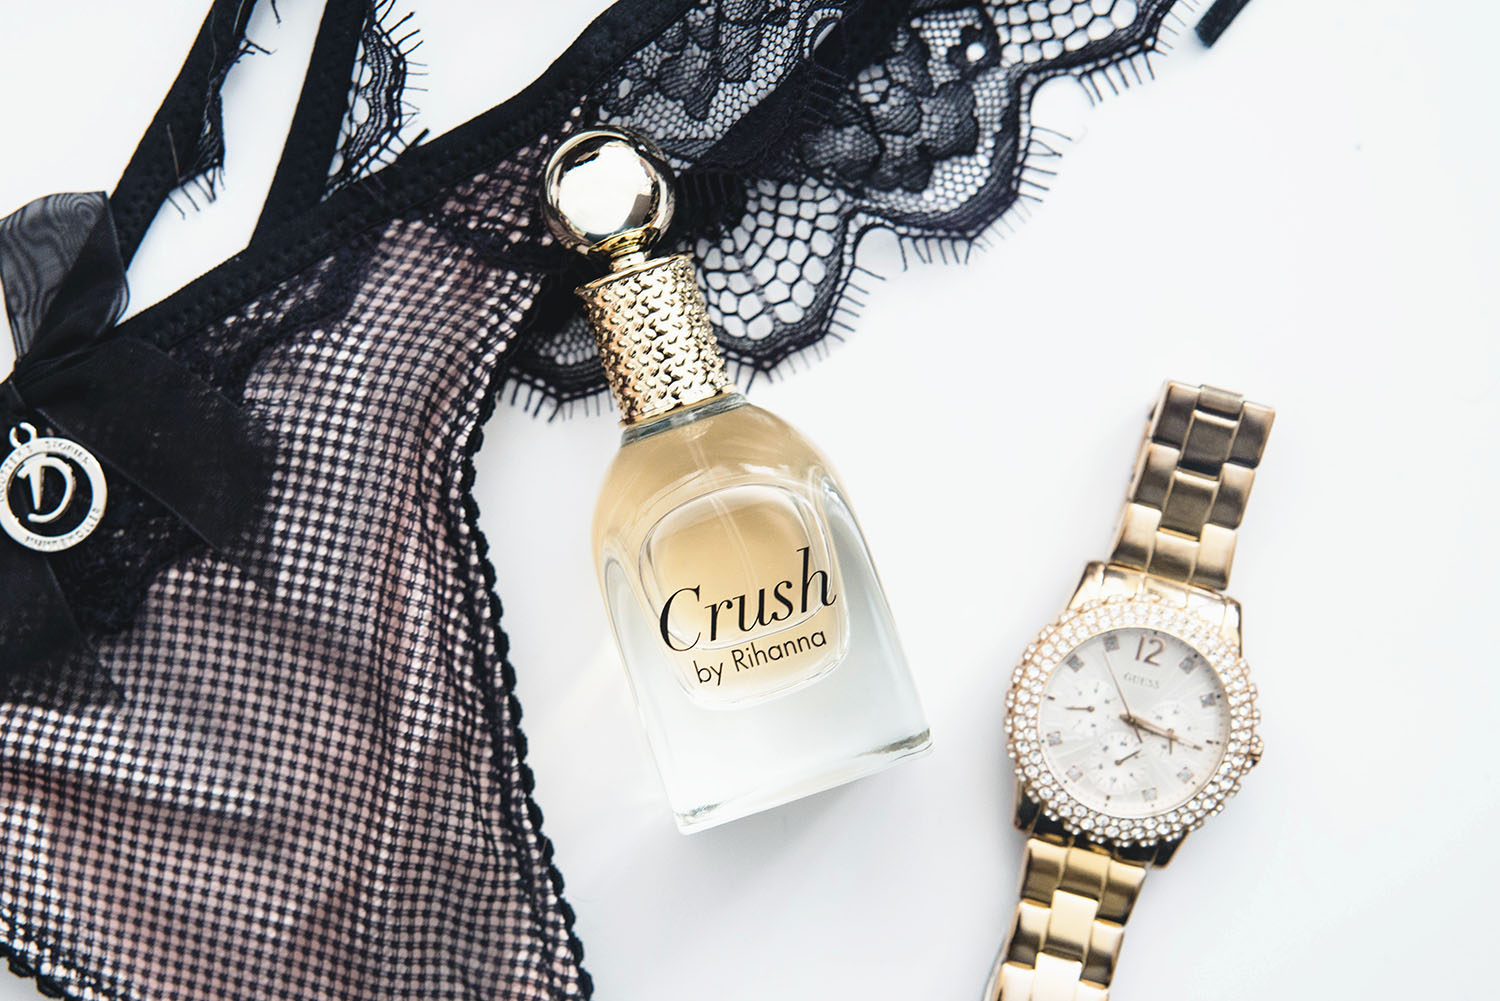 Flatlay with Crush by Rihanna & Guess Watch